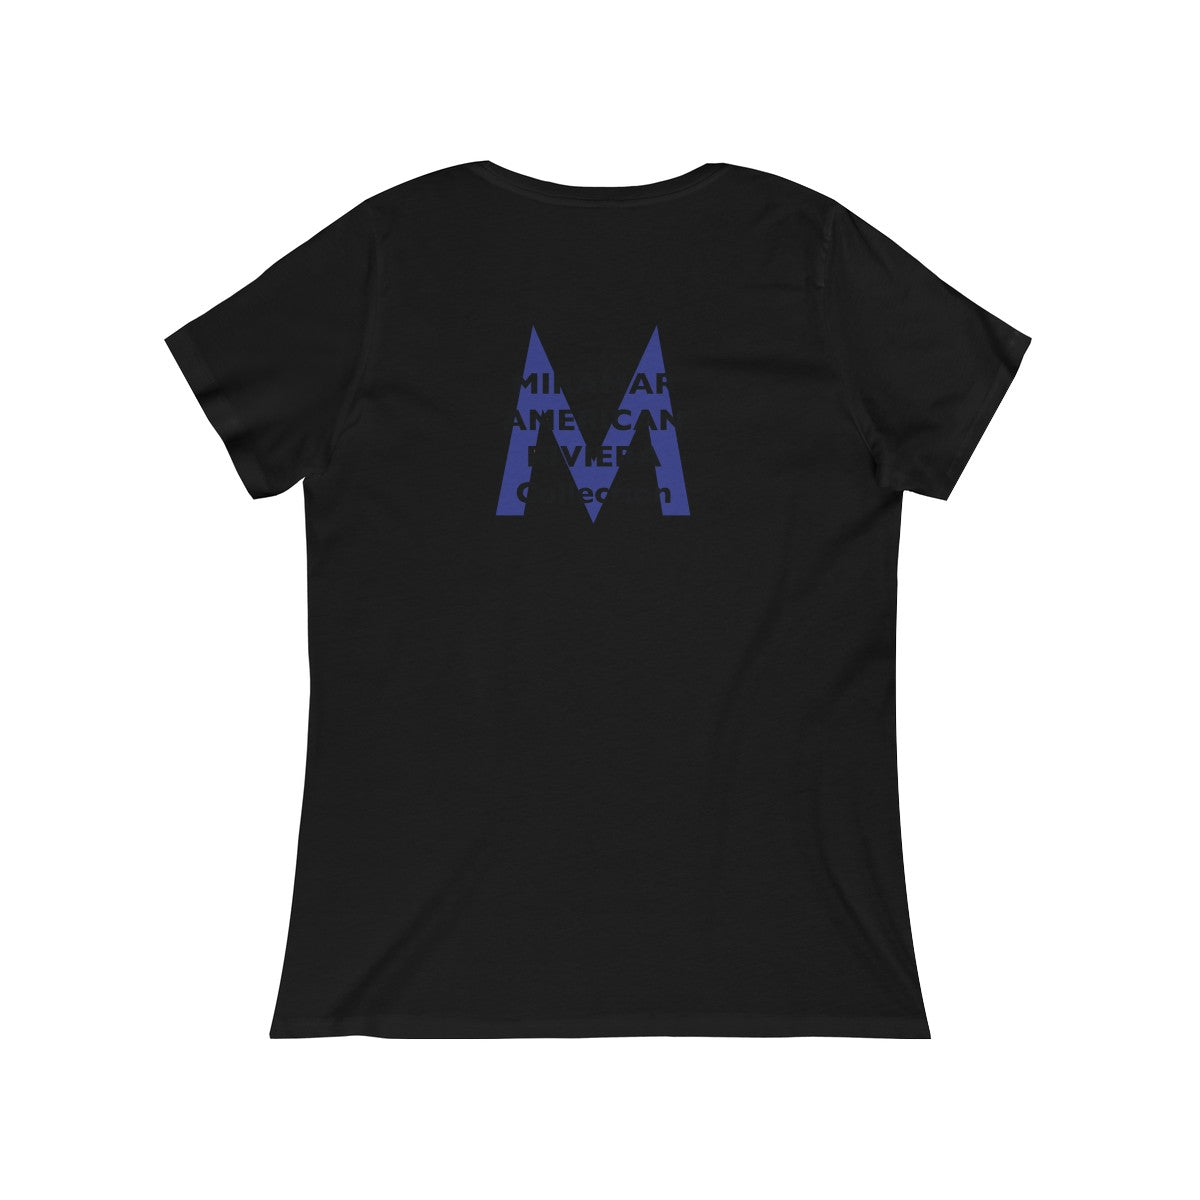 Miramar® We Care Collection Women's Scoop Neck Tee